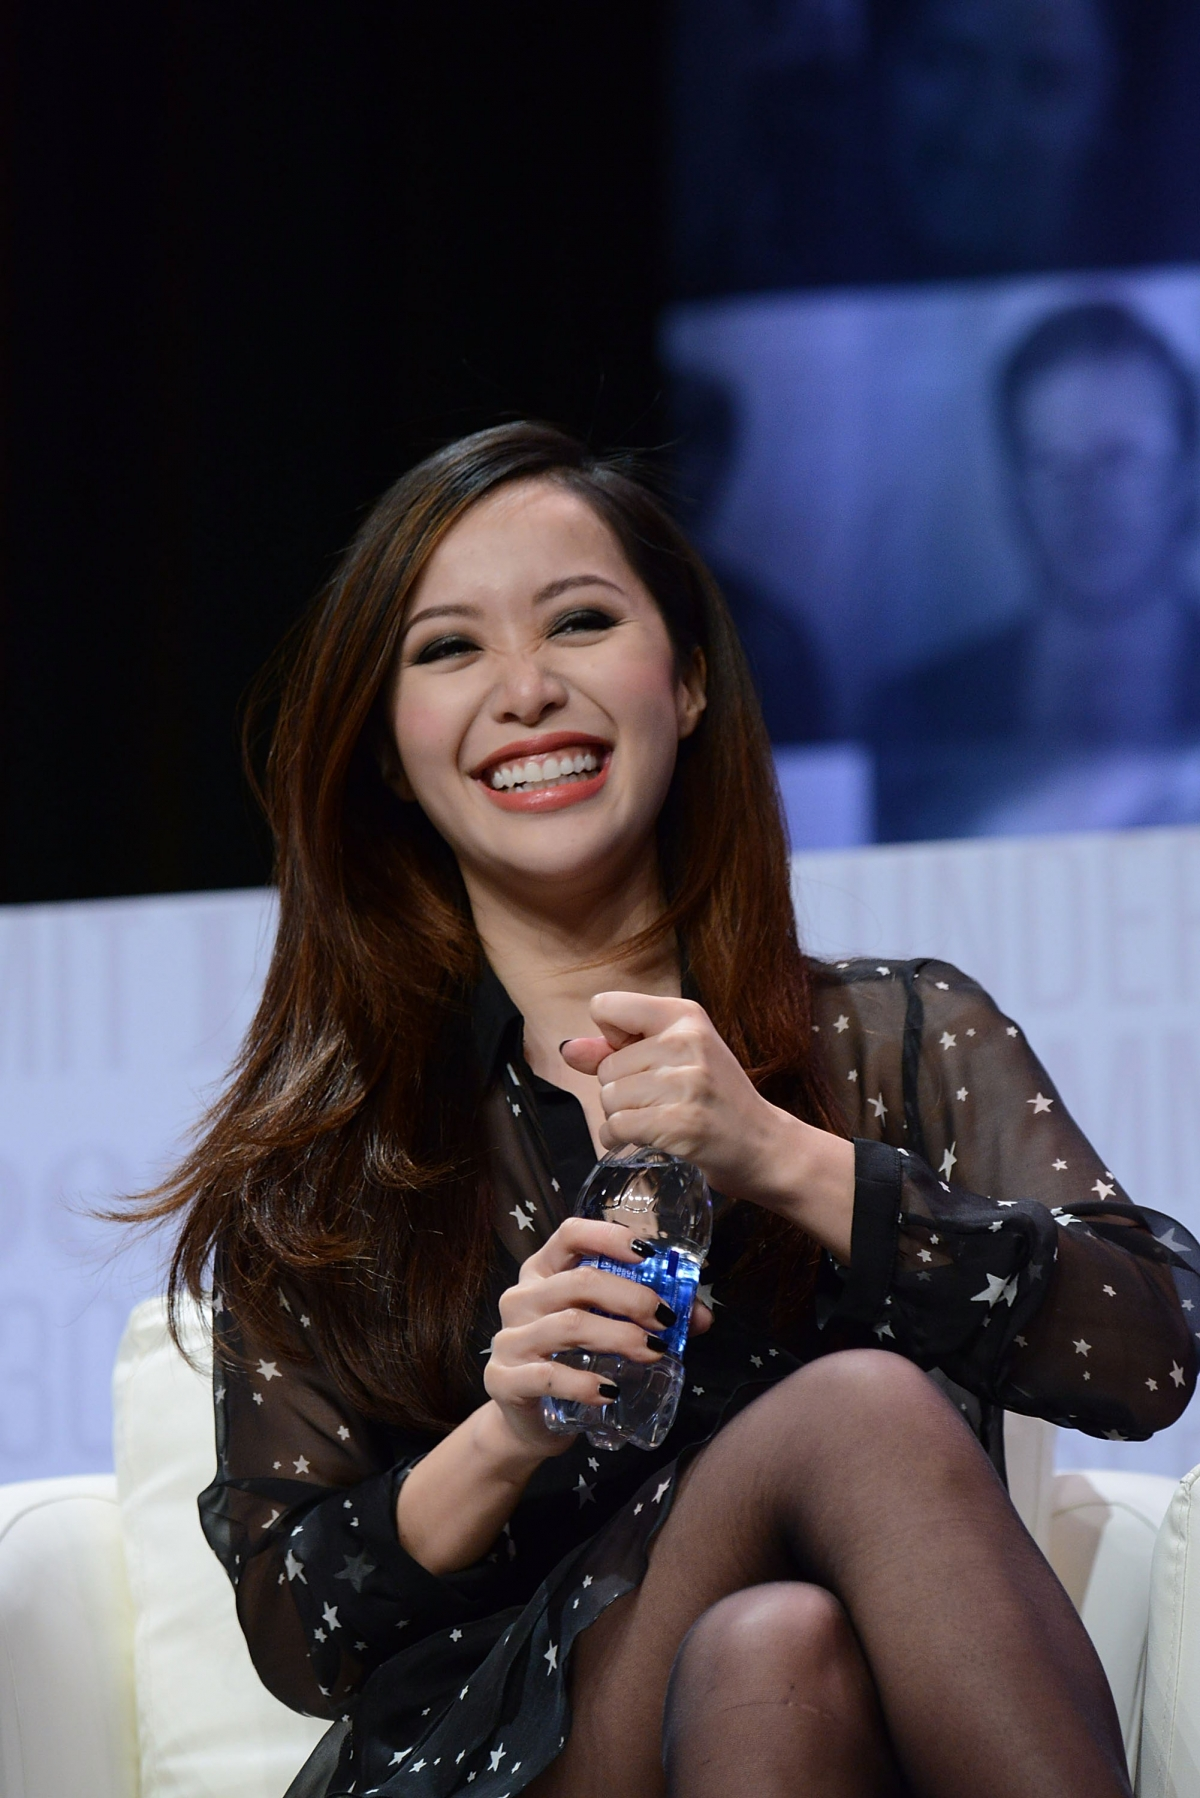 Michelle Phan Named One Of YouTube's Highest-earning